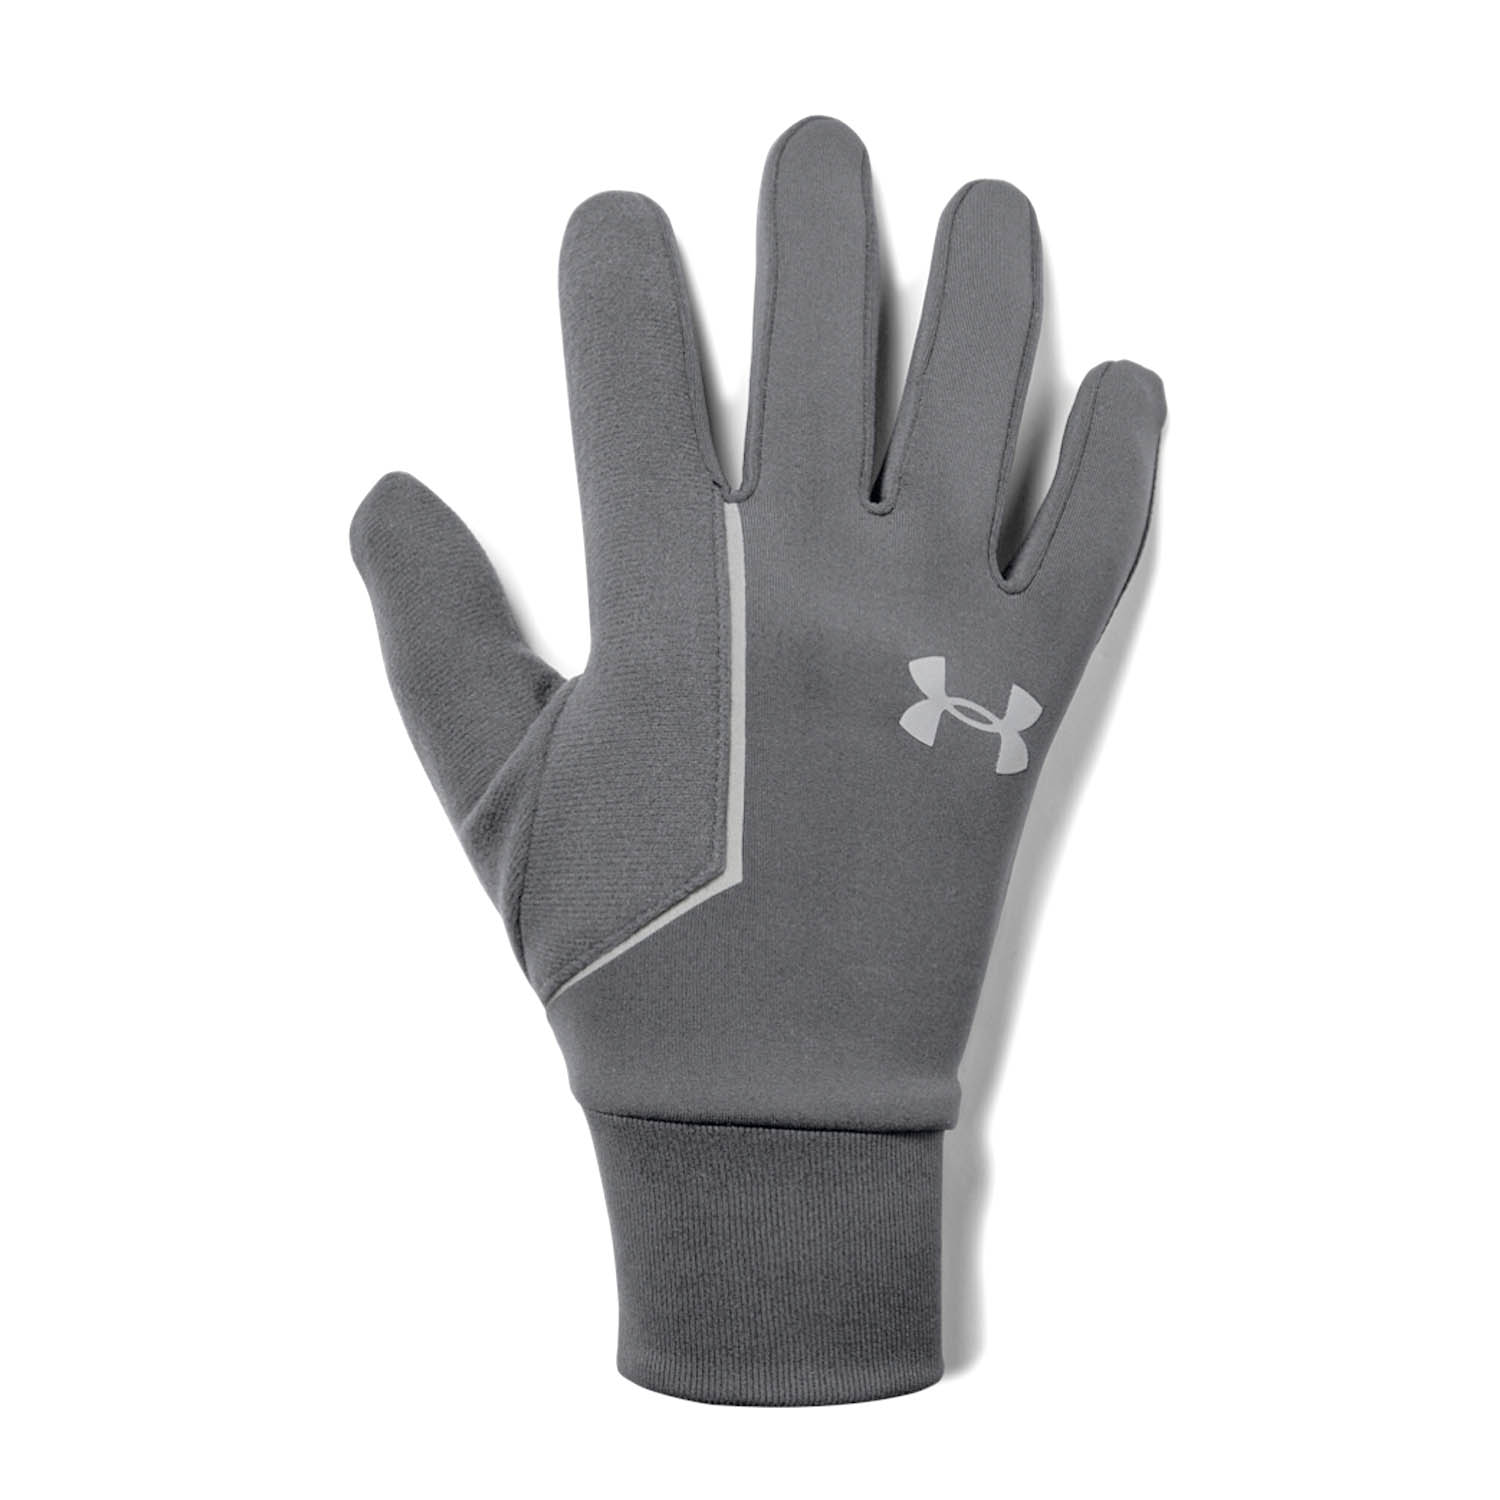 Under Armour Storm Run Liner Guantes - Pitch Gray/Silver Reflective